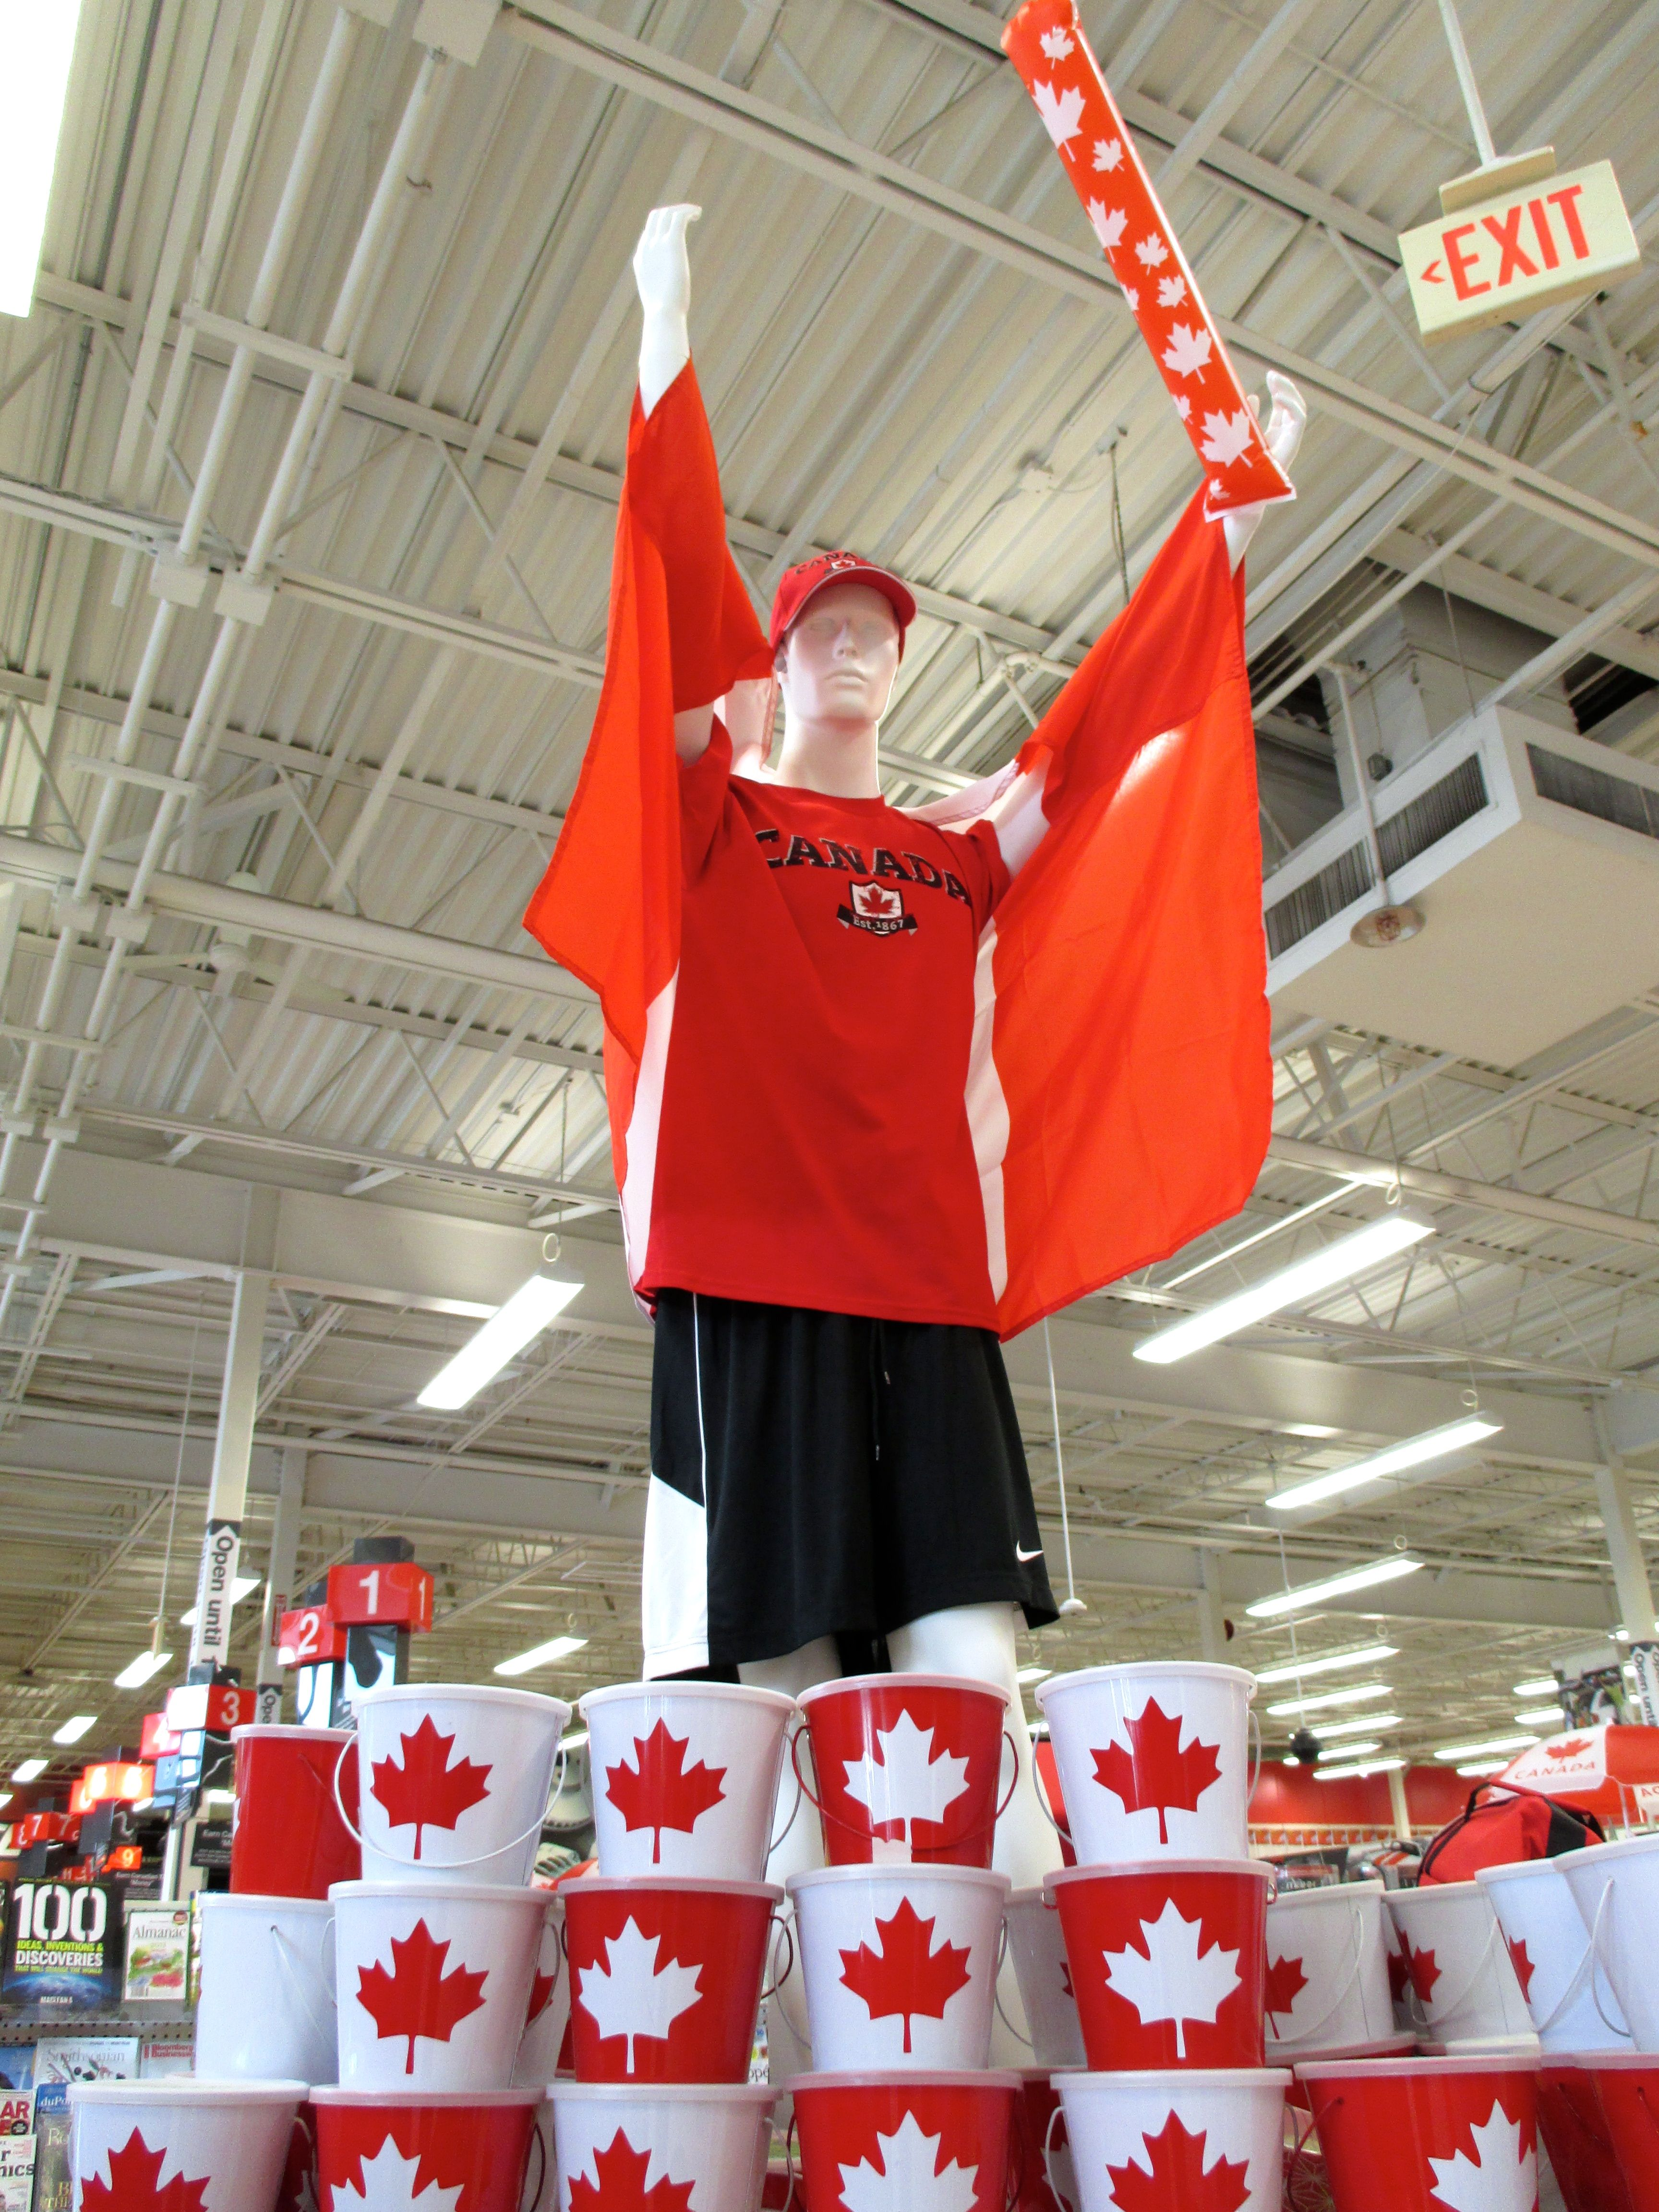 Find All Your Canada Day Essentials At Canadian Tire